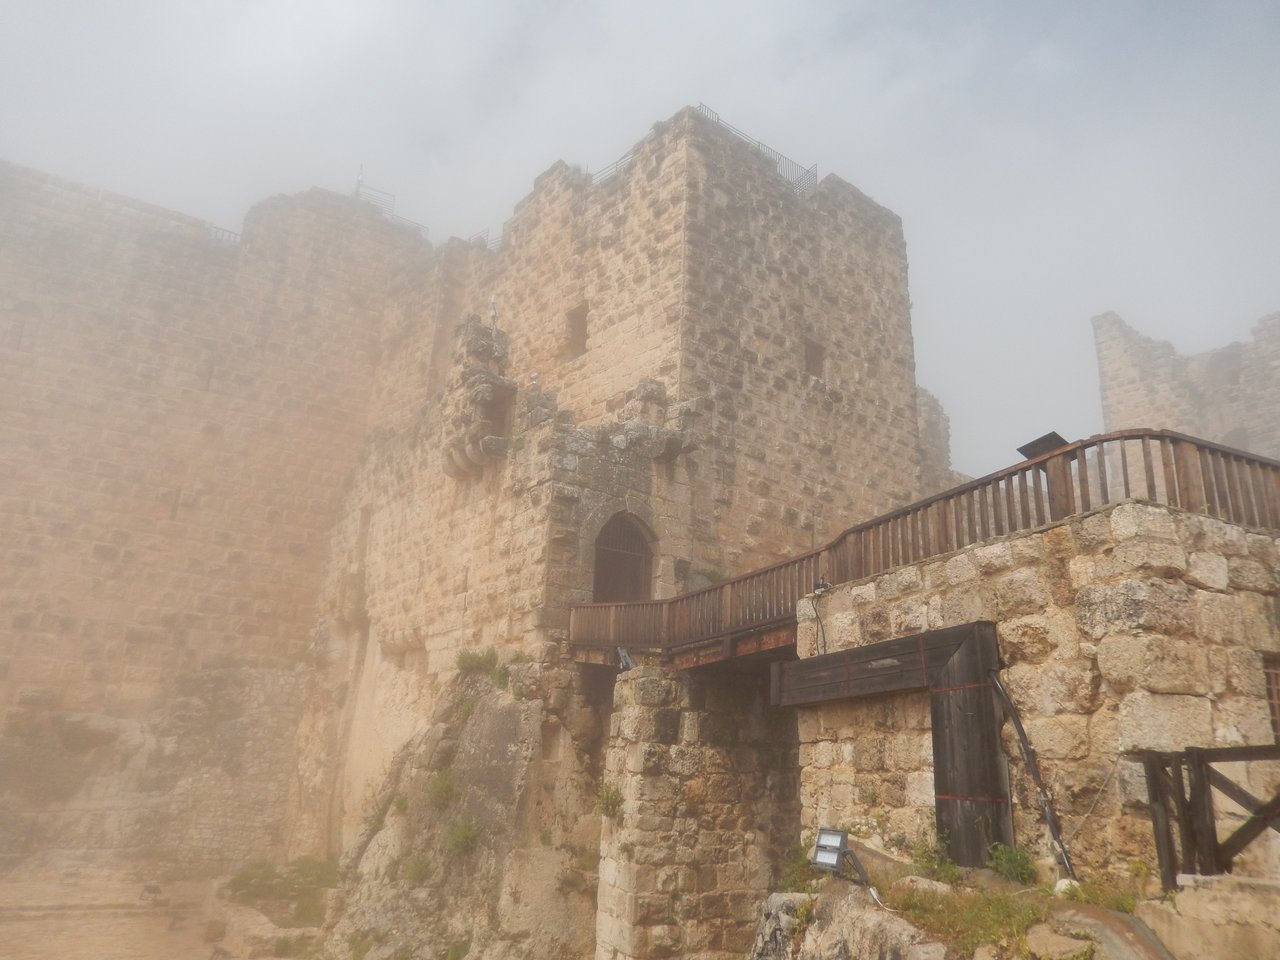 Ajloun Castle | Photo taken by Linley V